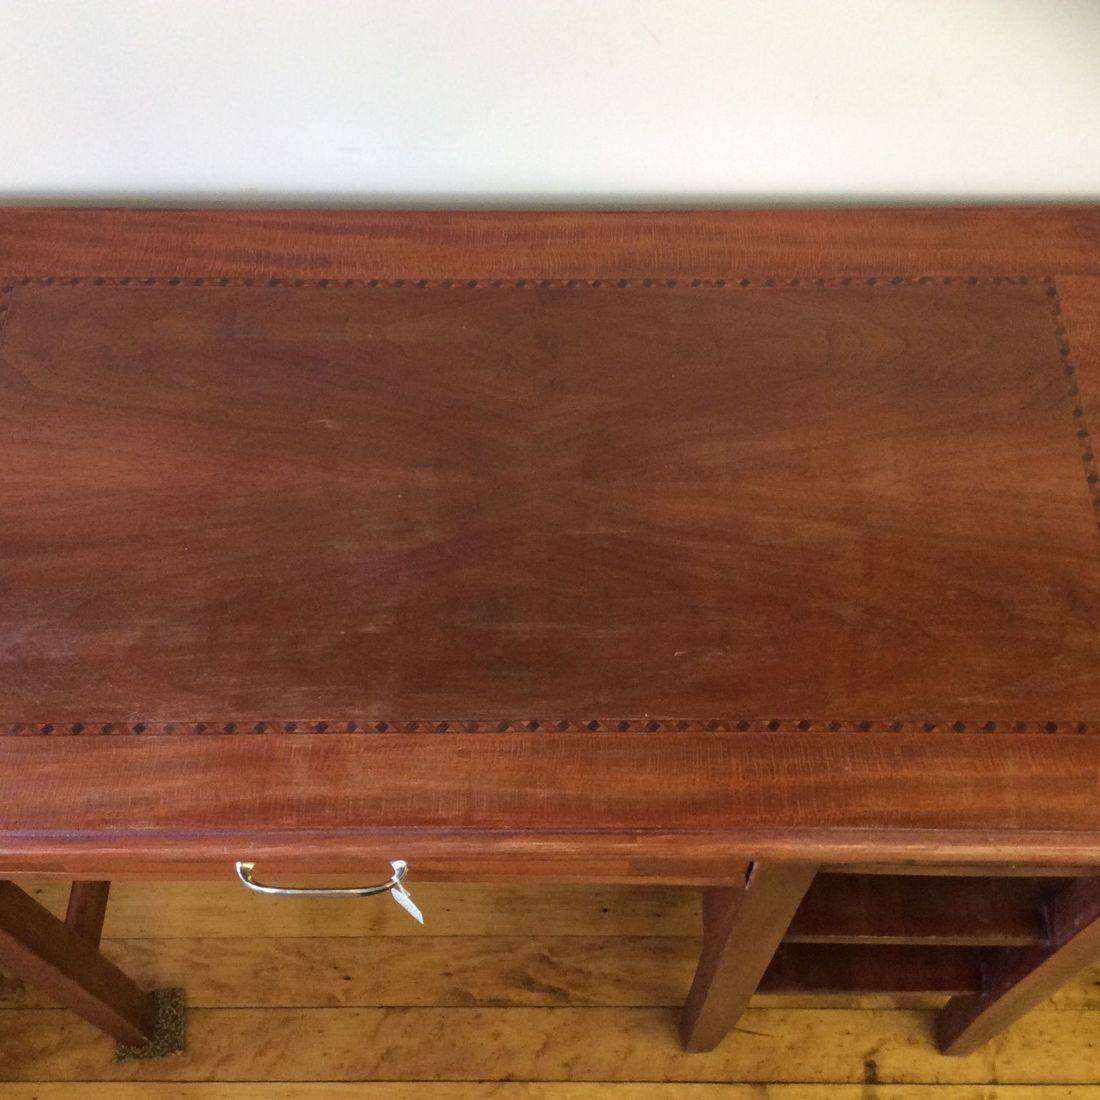 Top View of 1950's Cherry Finish Desk   $150.00